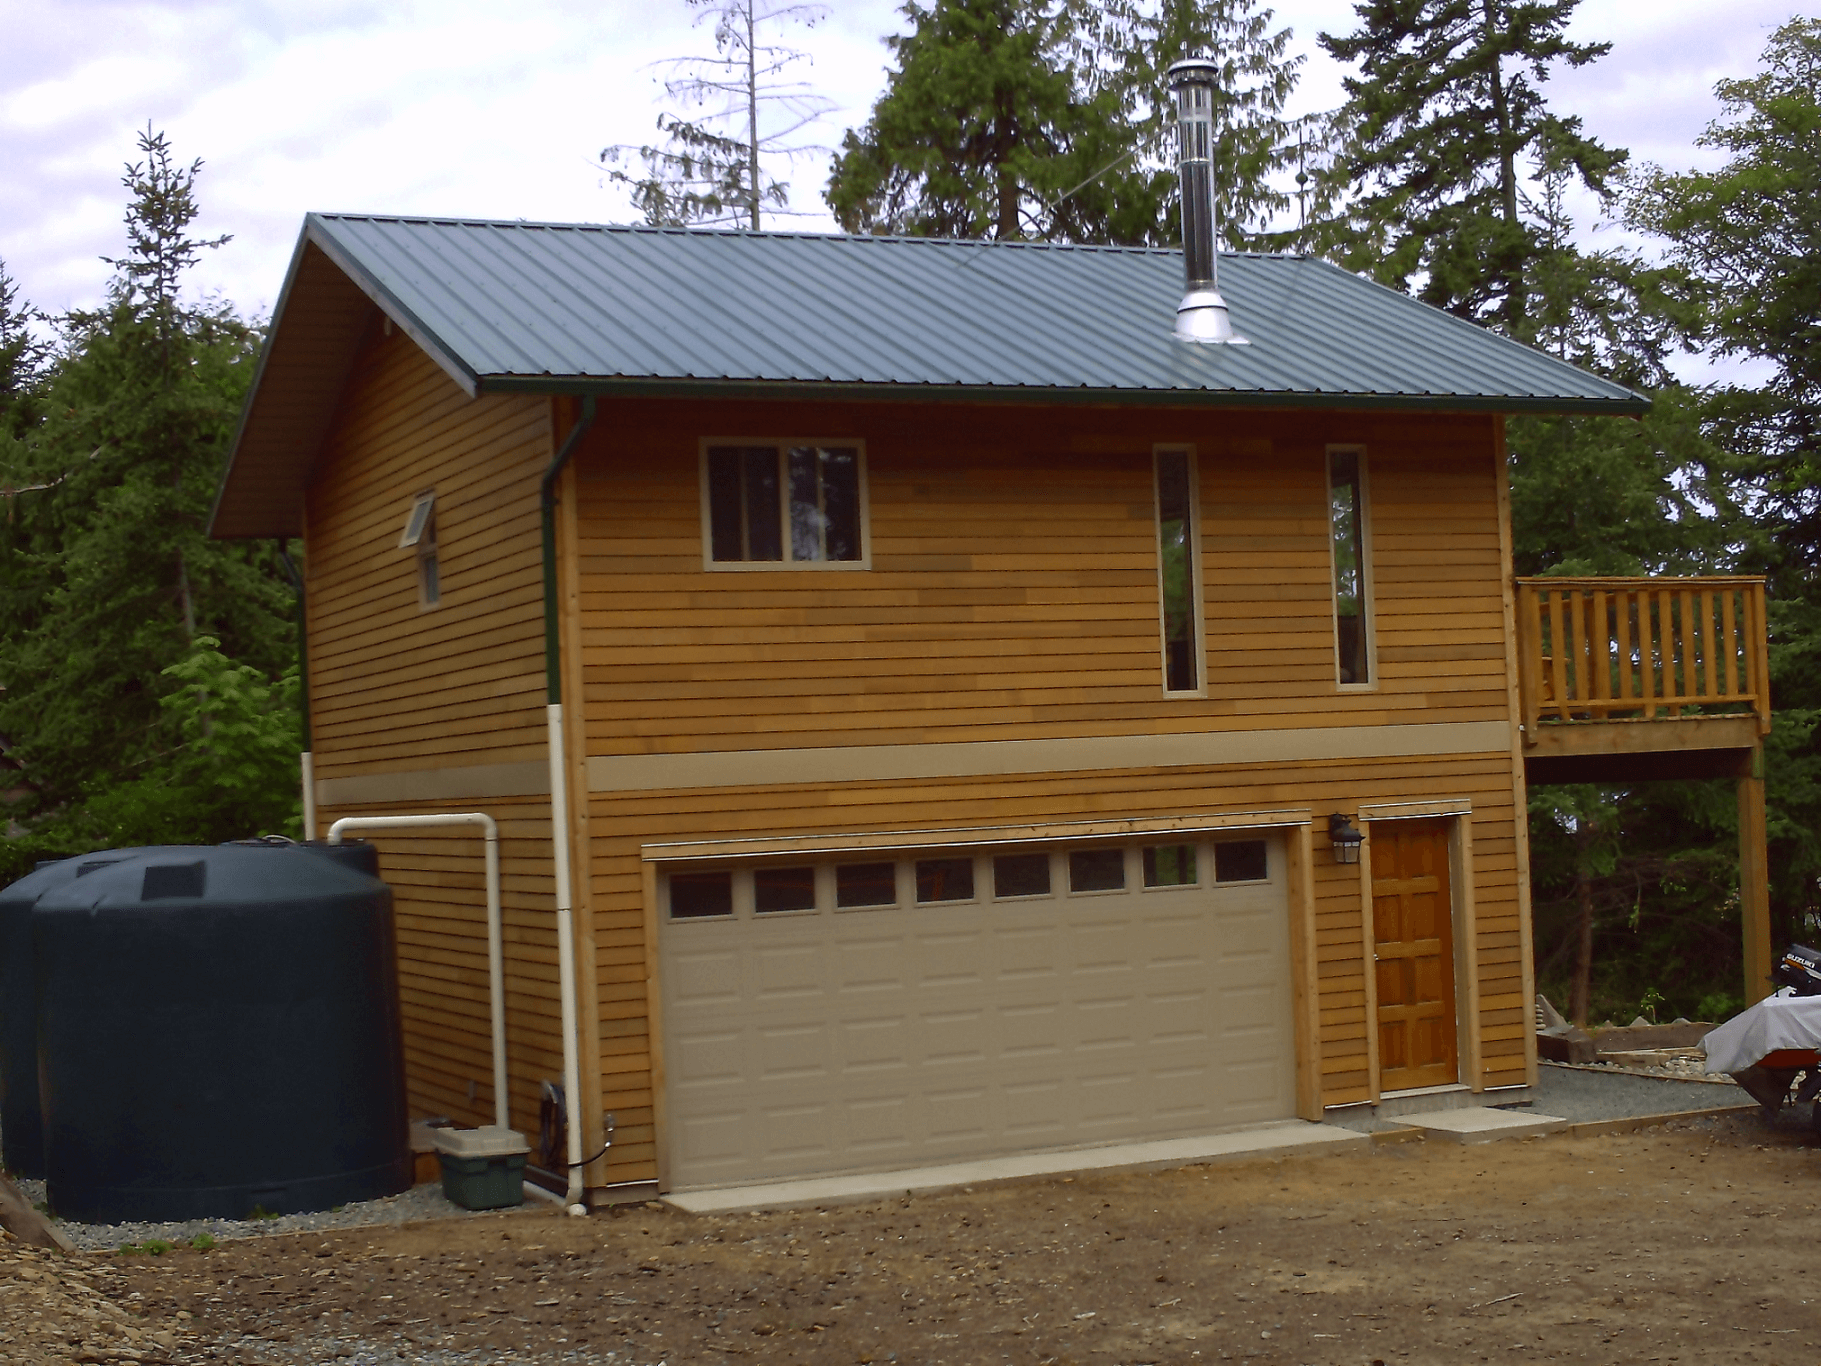 Wooden tiny house design with garage